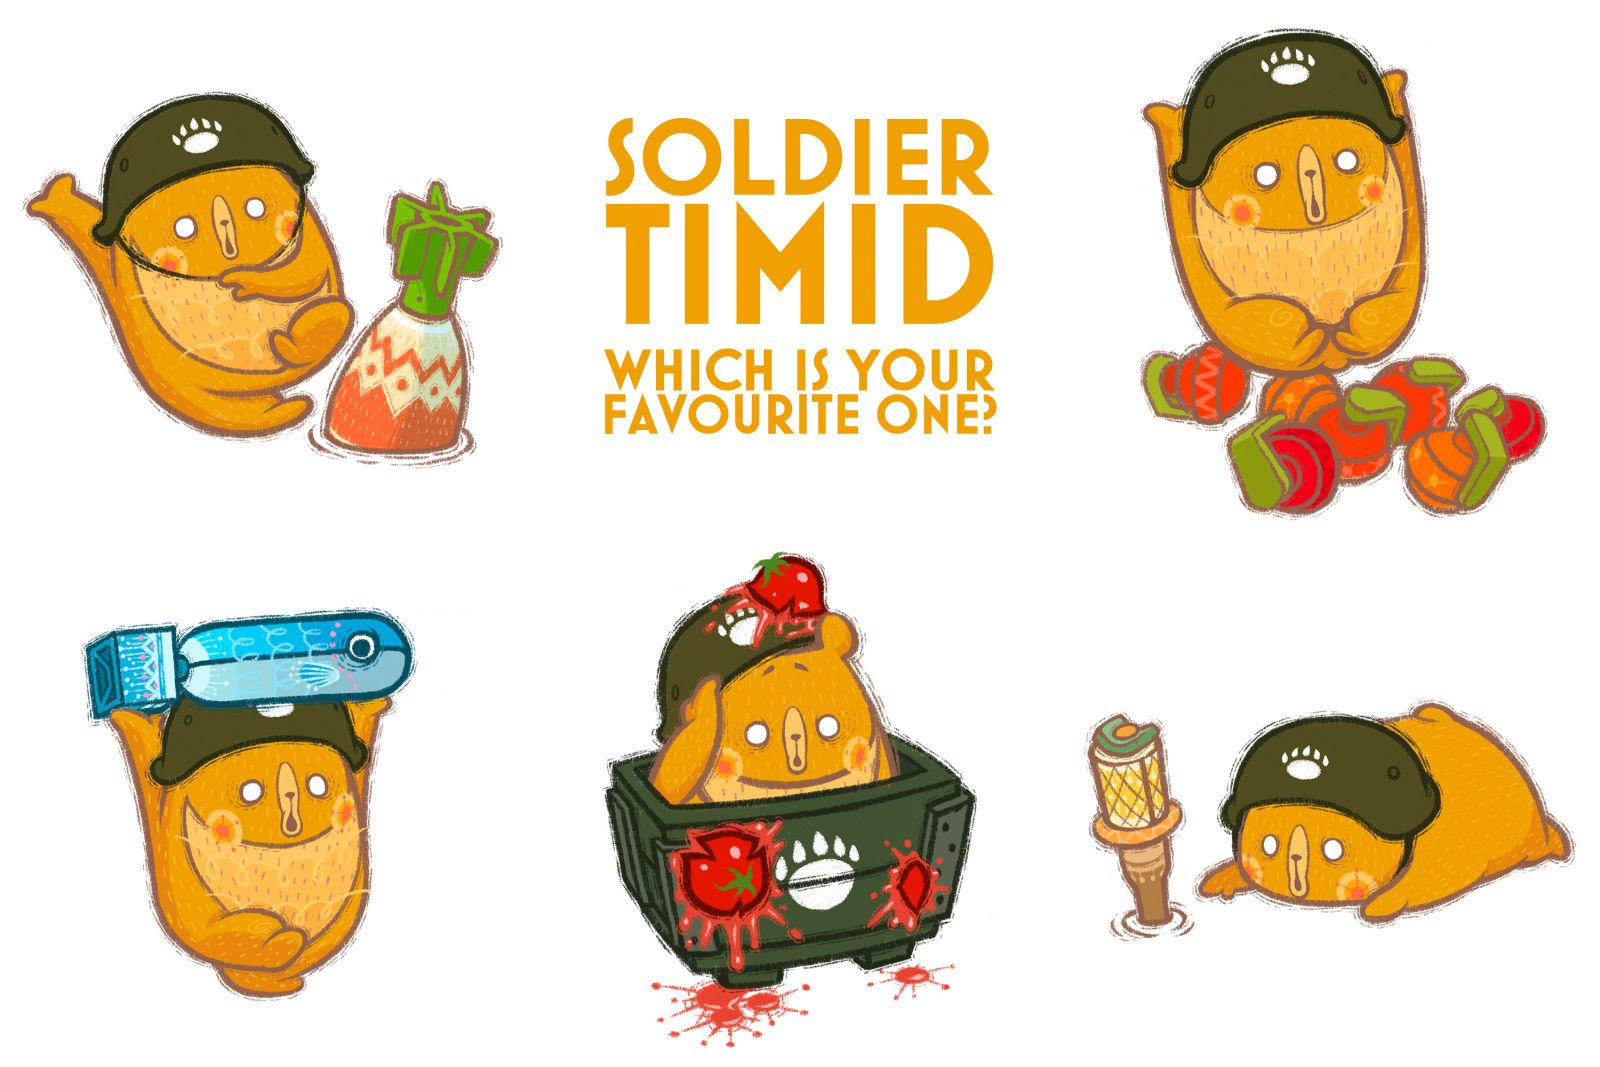 Soldier Timid